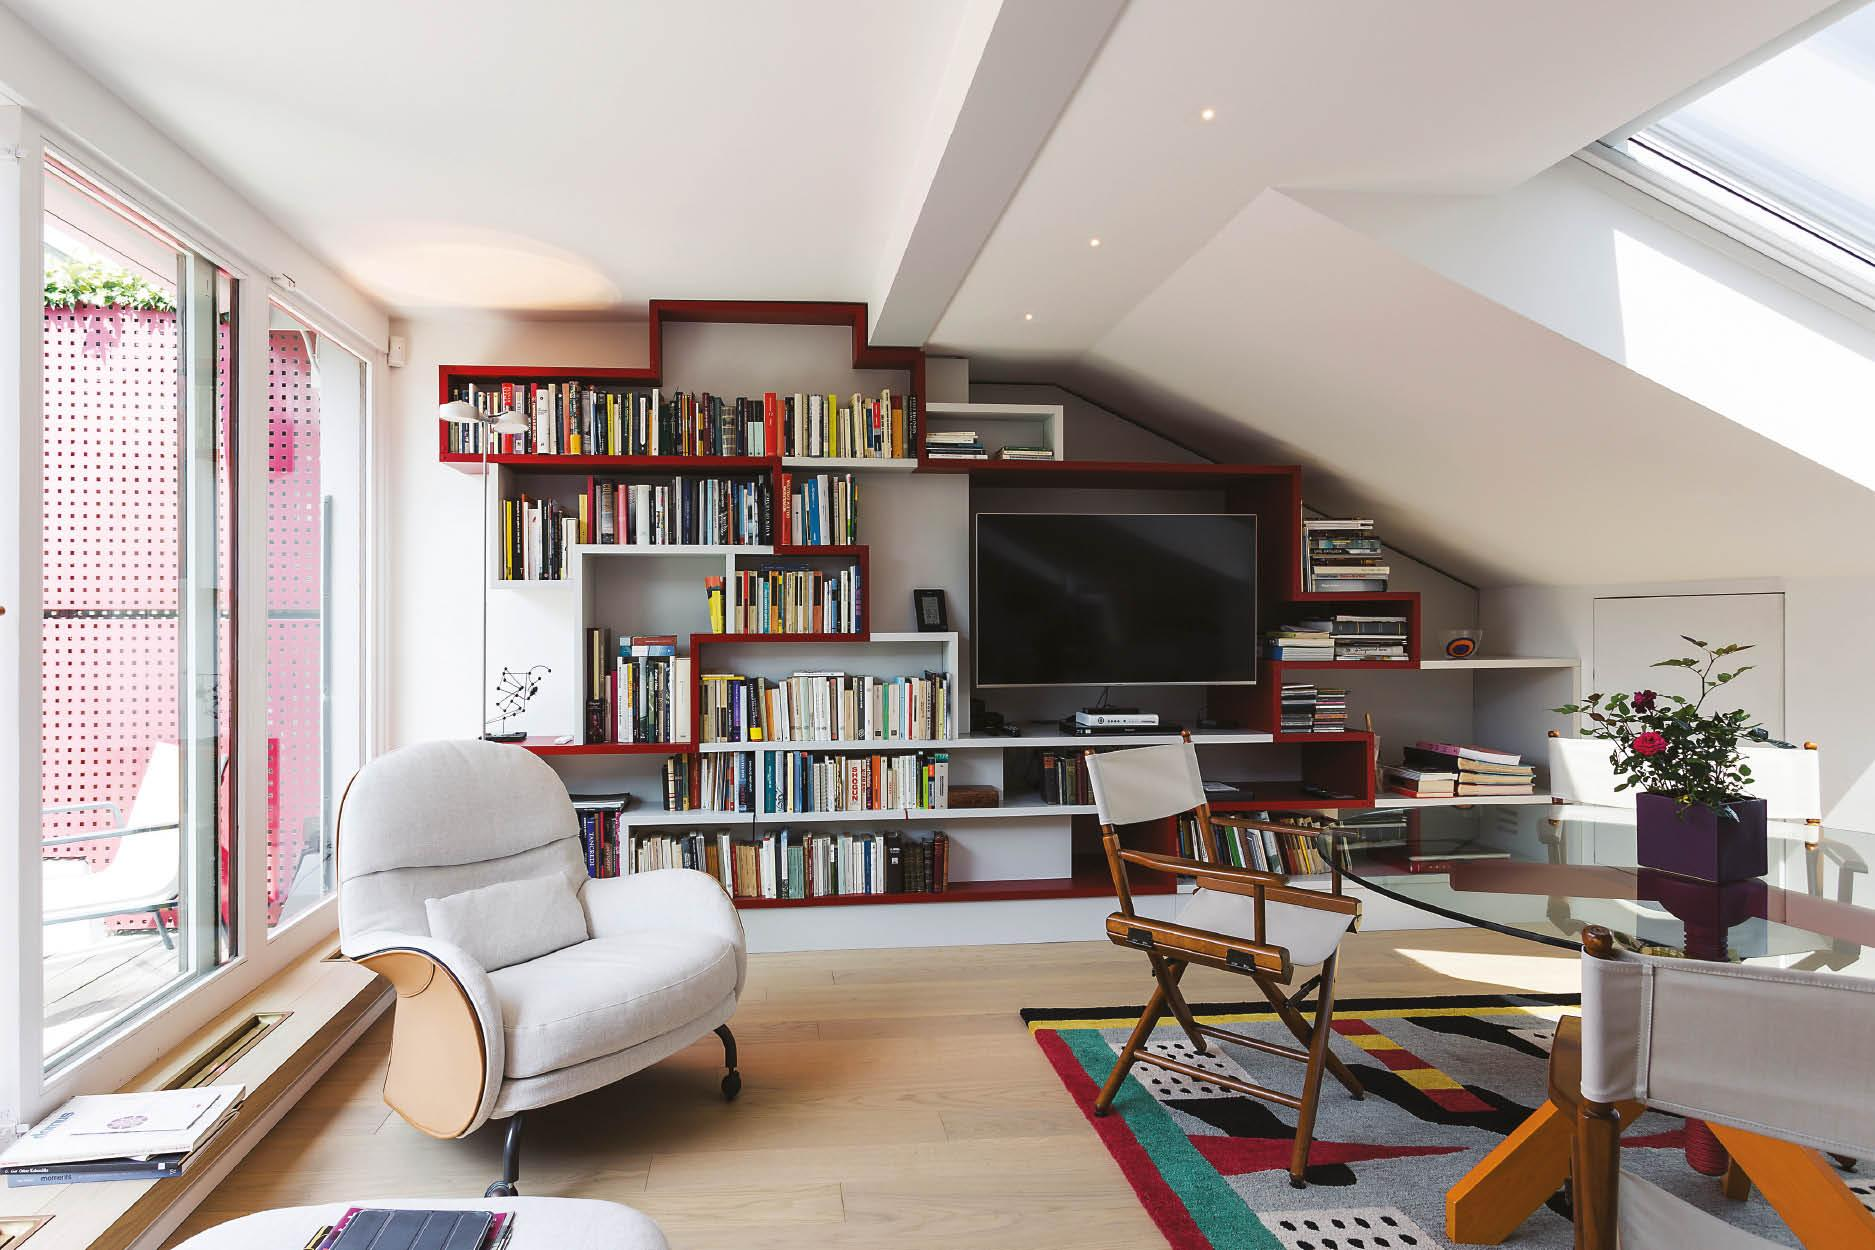 Eclectic Treasures Meet Sleek Contours at this Alluring Abode in Milan